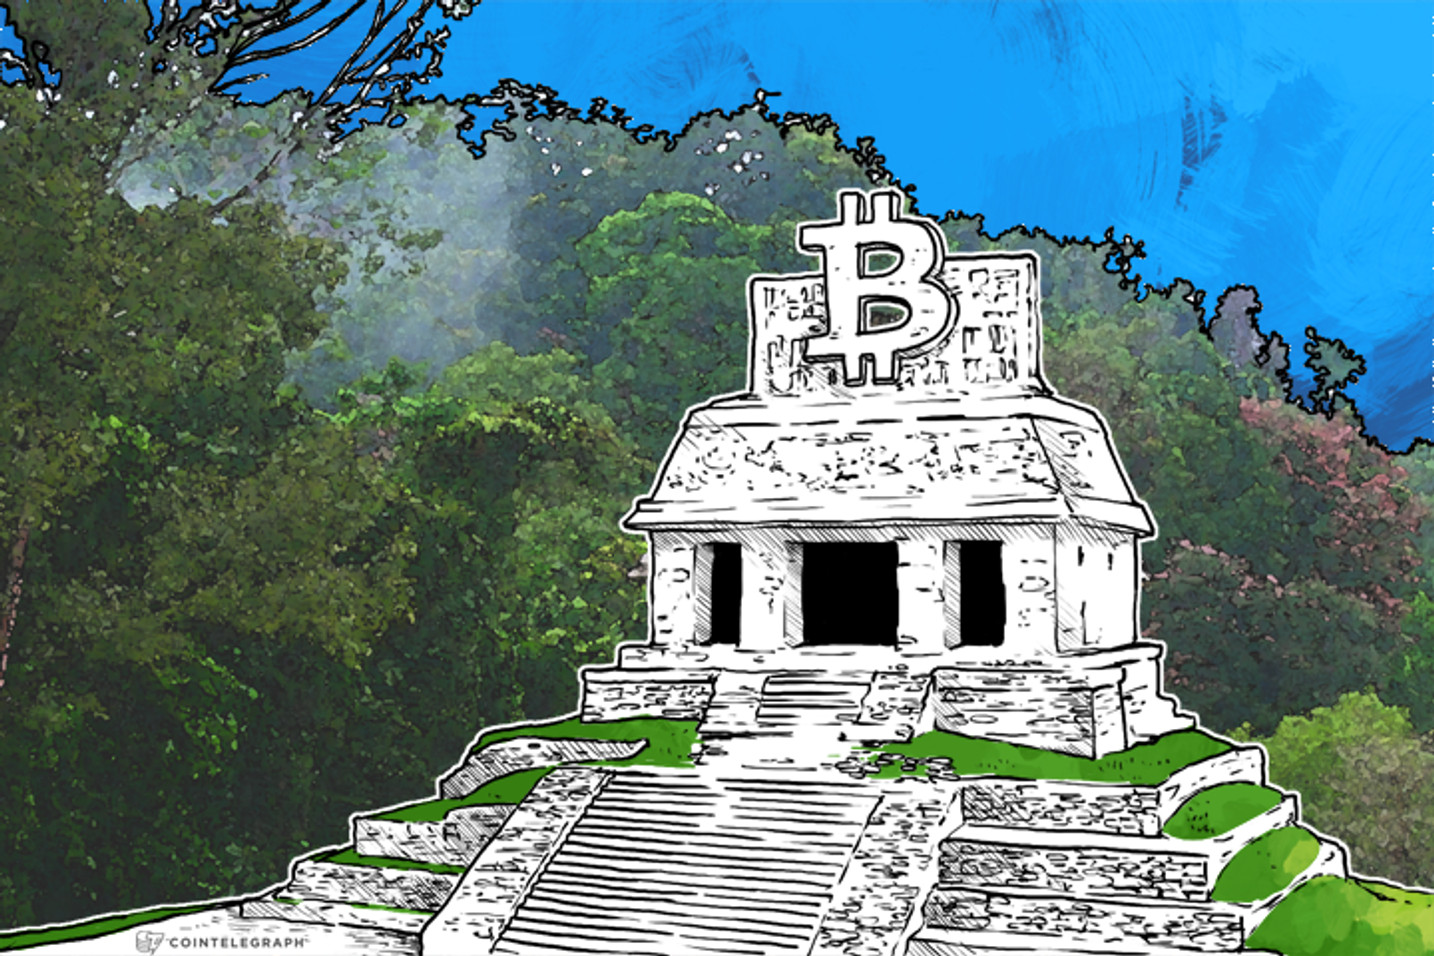 Eléutera Foundation to Make Bitcoin Available to Hondurans